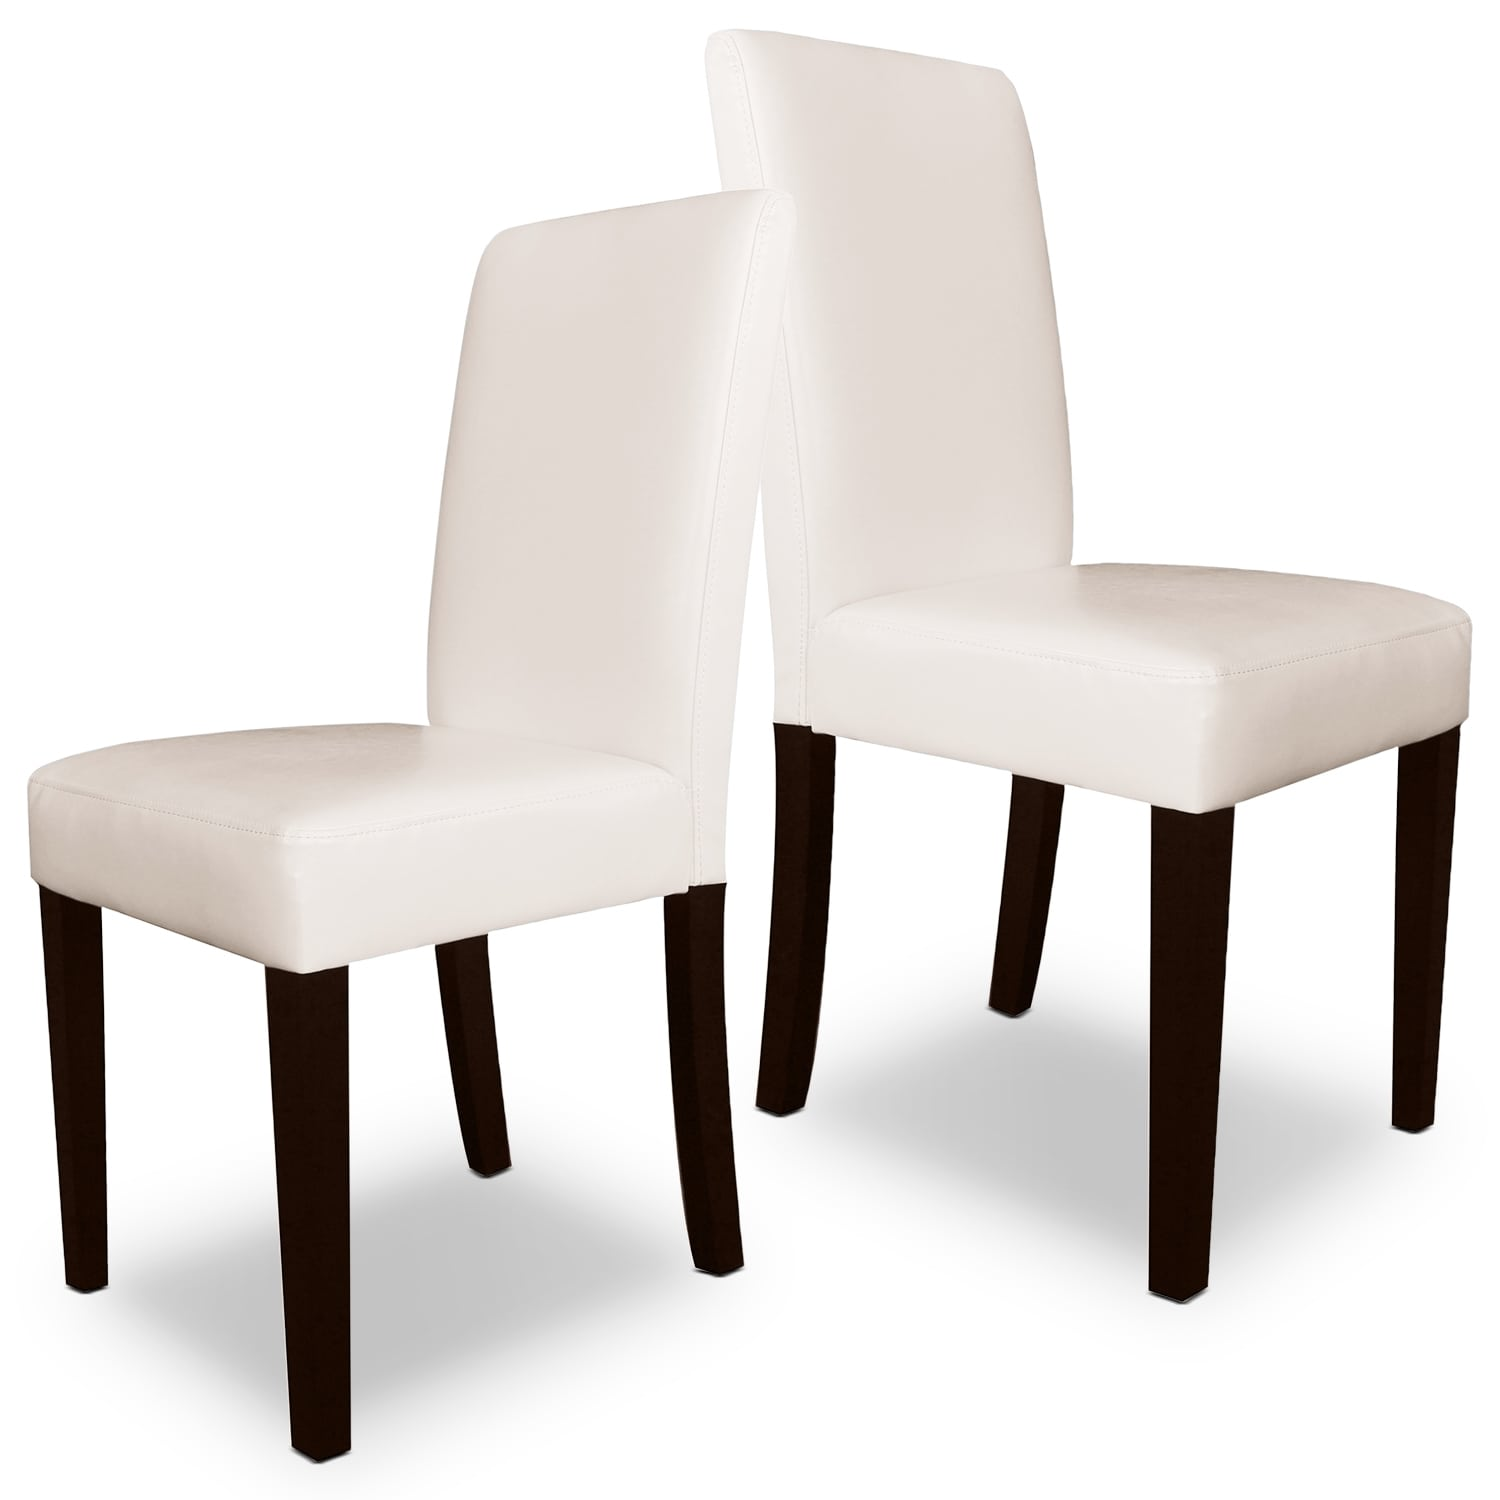 White Faux Leather Accent Dining Chair – Set of 2